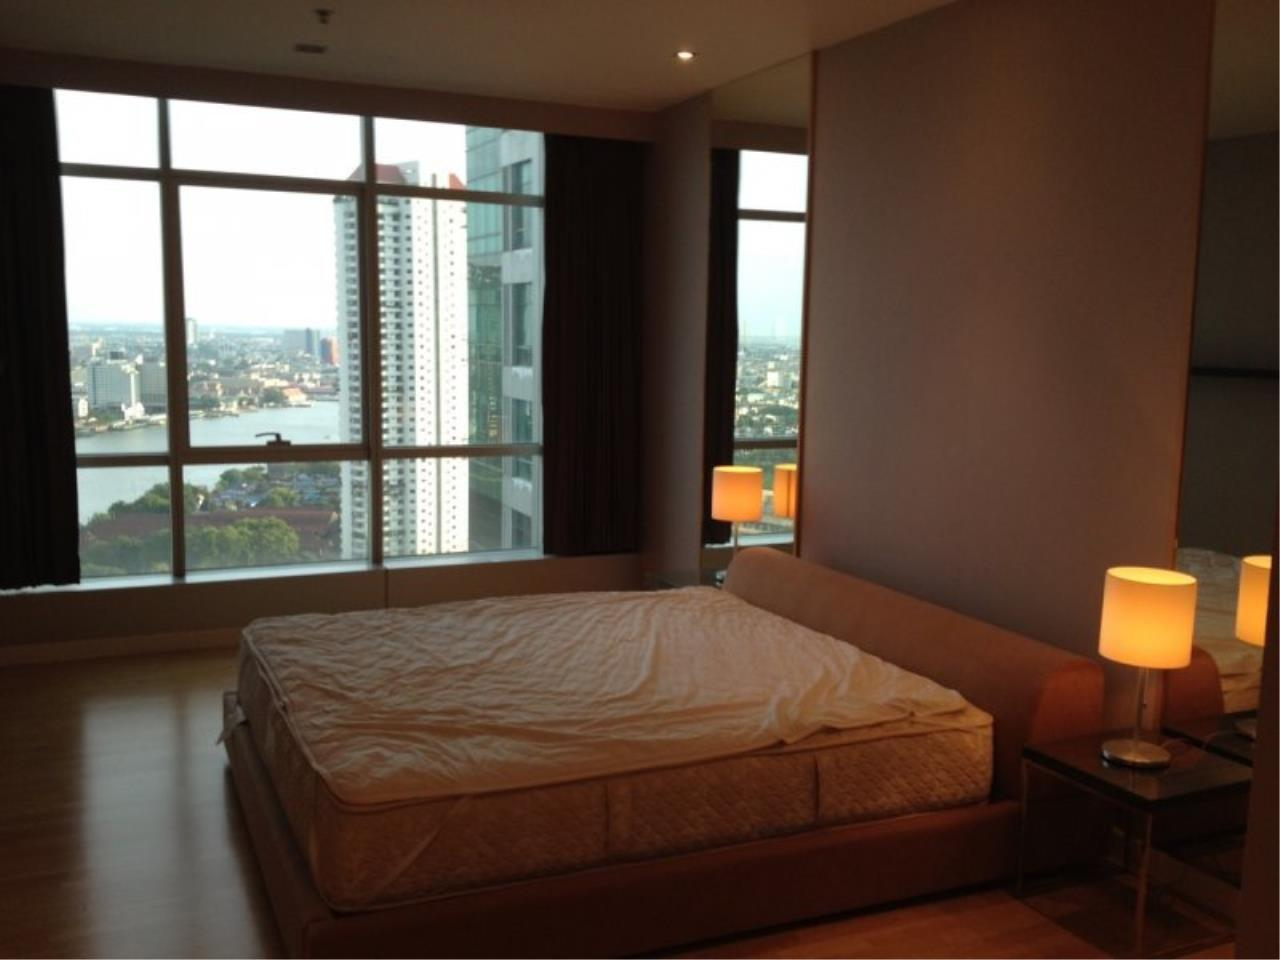 Piri Property Agency's 1 Bedroom in the Baan Sathorn Chaophraya building for rent on high floor 2